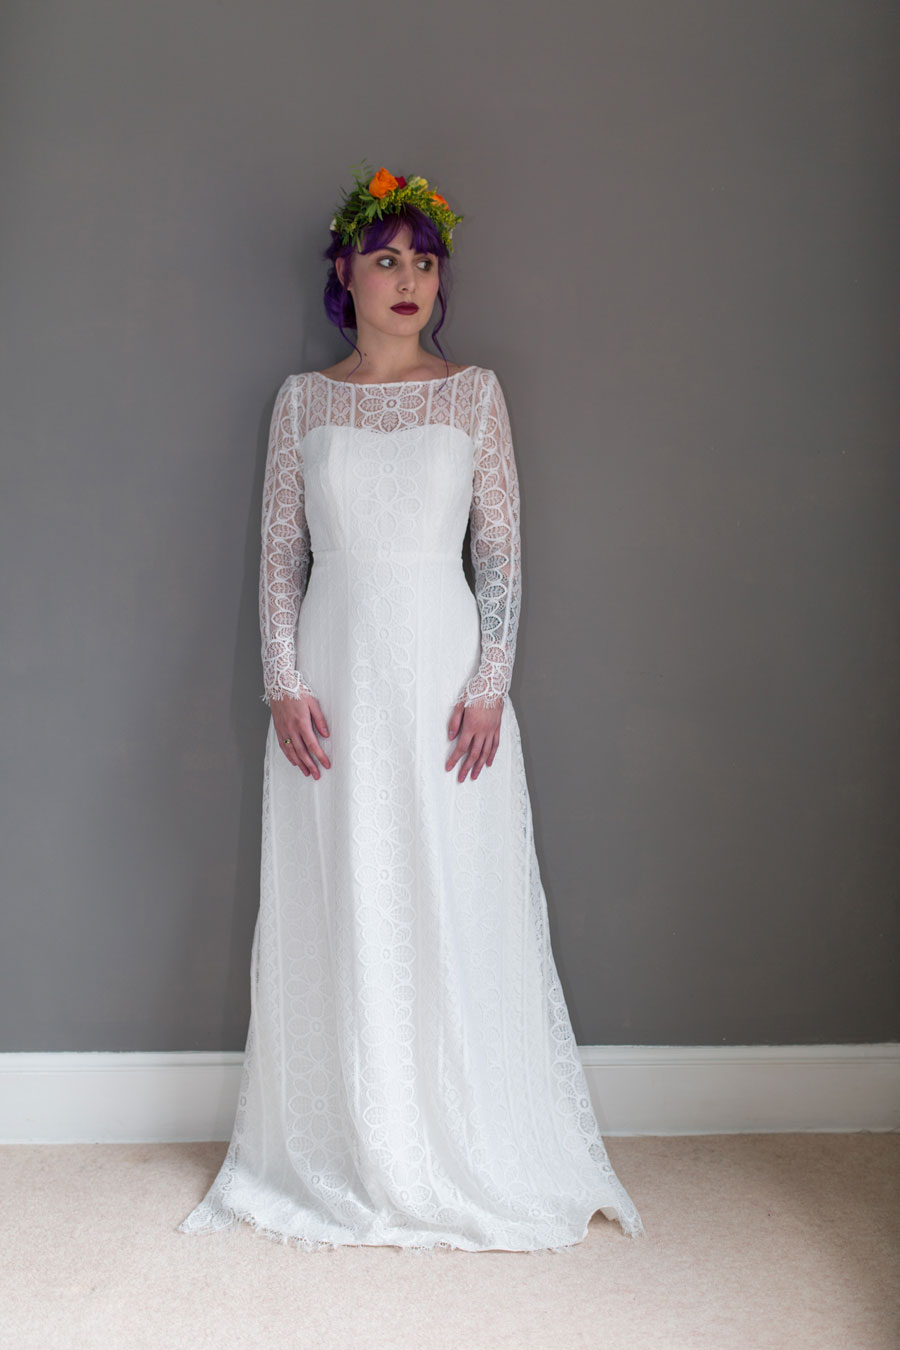 Quirky Wedding Dresses For Non-Traditional Brides- Lucy Can't Dance0029